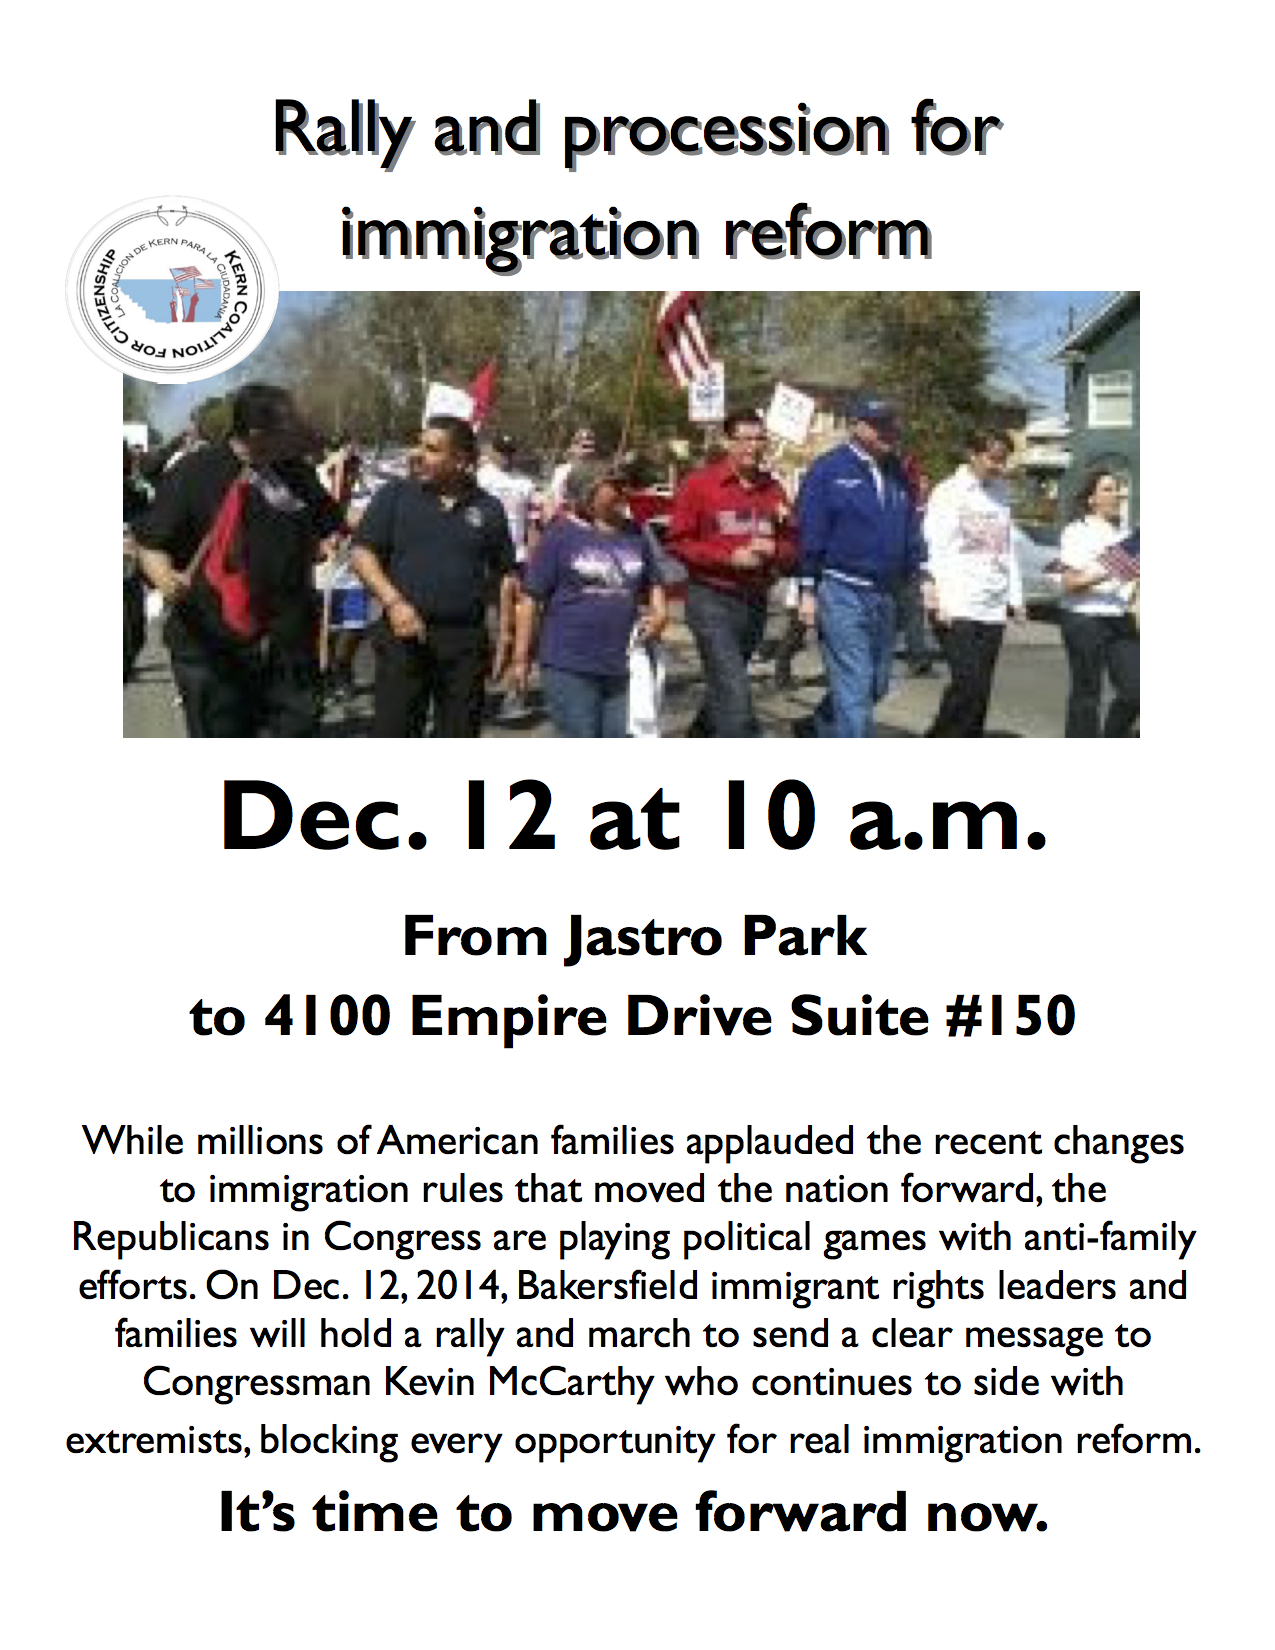 Kern Coalition for Citizenship: Rally and Procession for Immigration Reform